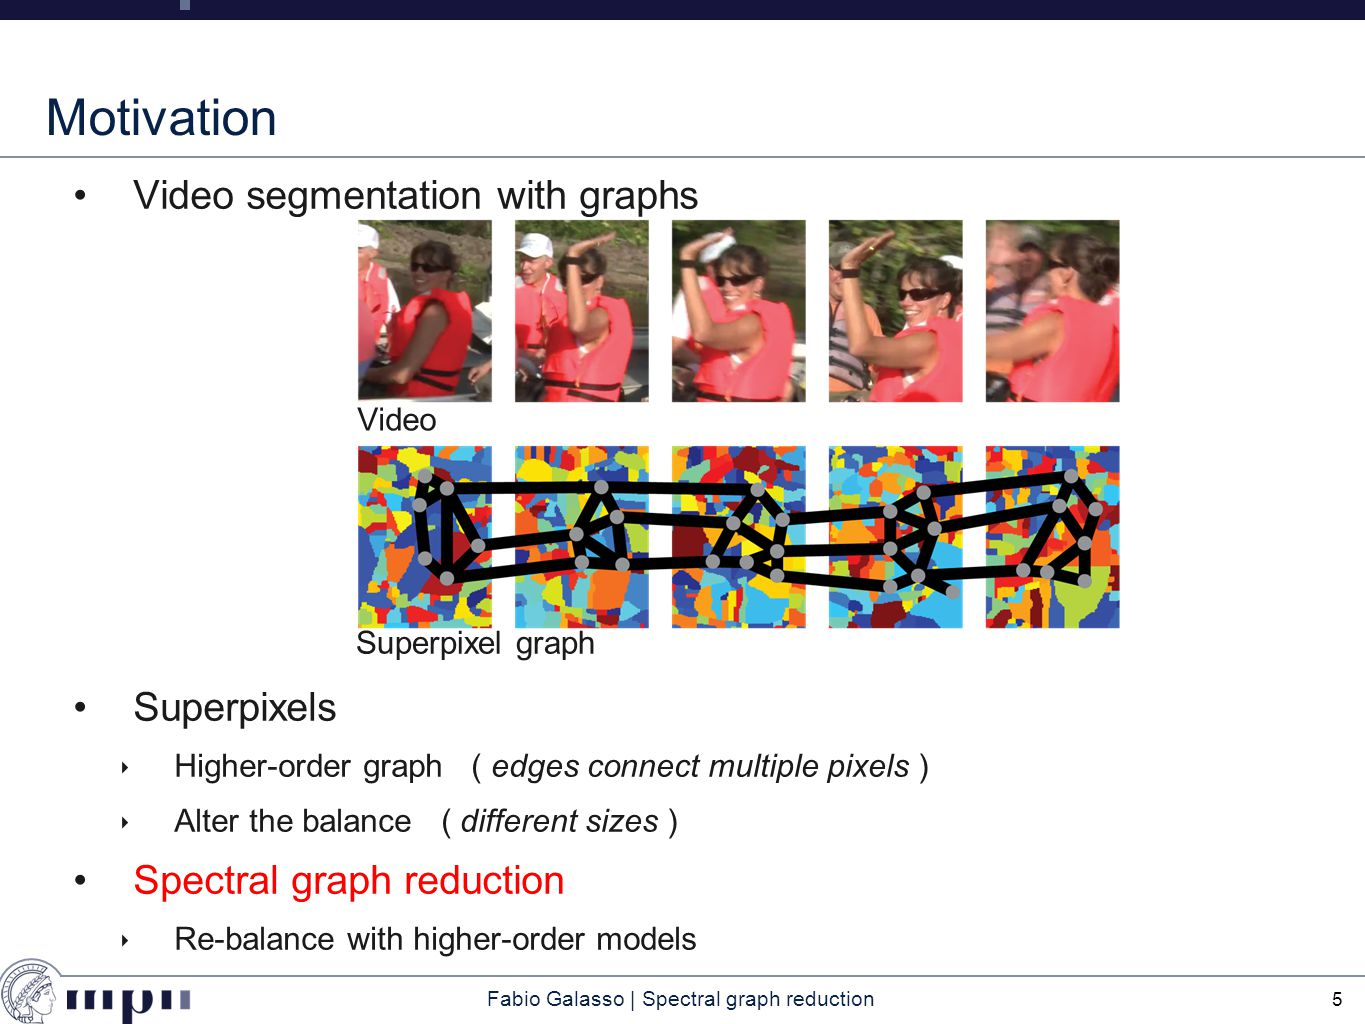 Fabio Galasso | Spectral graph reduction Motivation Video segmentation with graphs Higher-order features and performance 6 Video Superpixel graph Larger superpixel graph